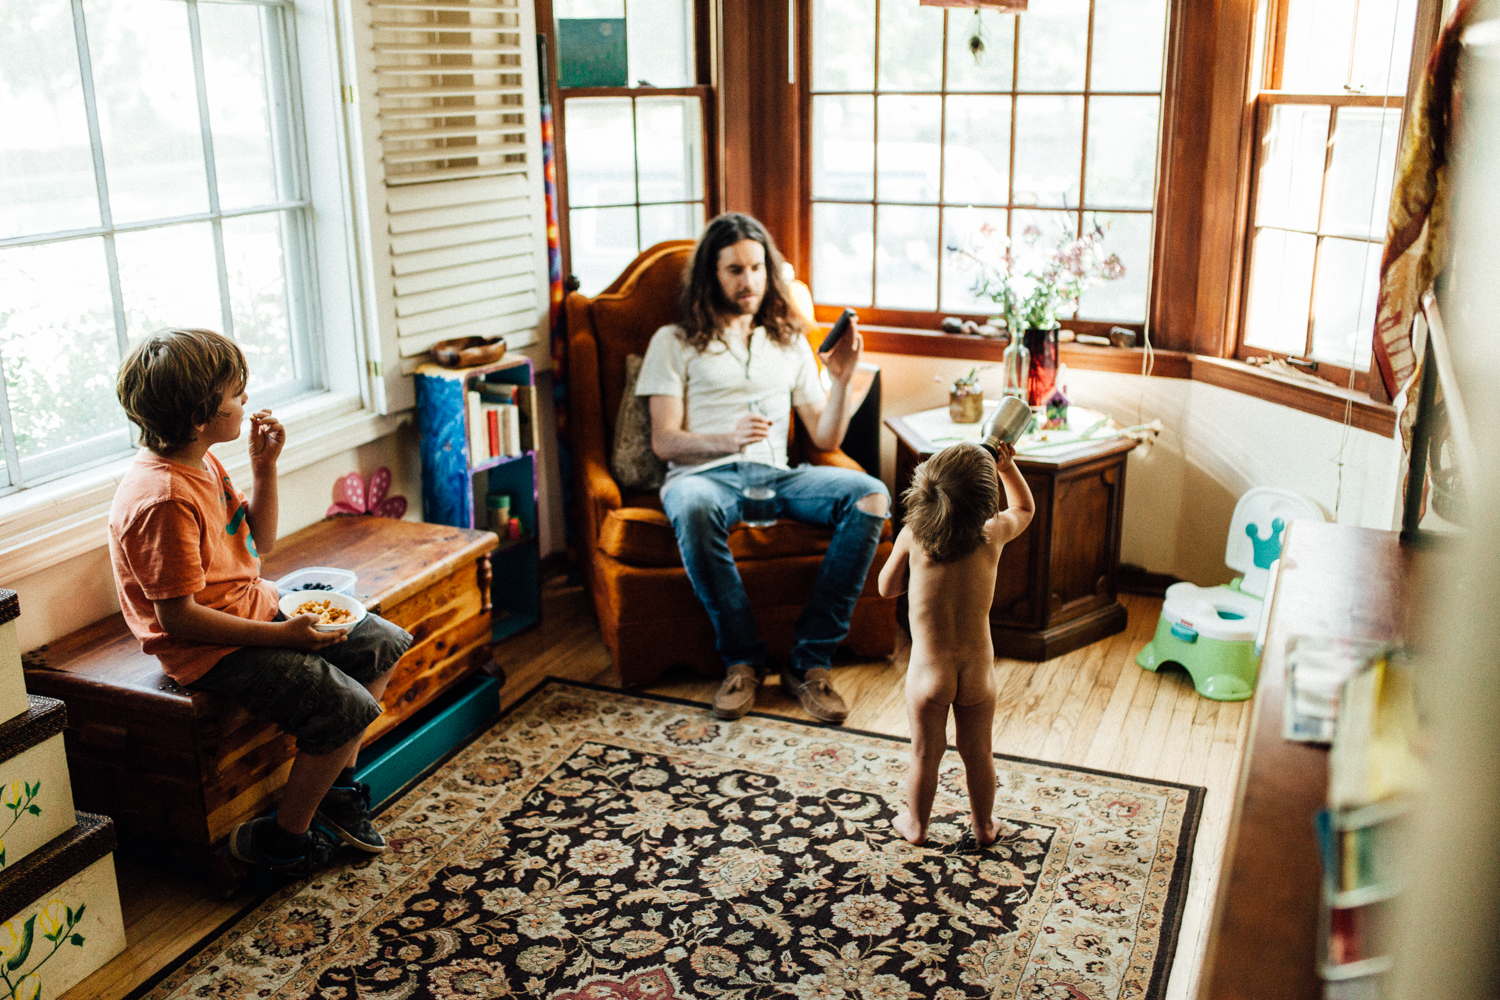 father-and-children-in-home-eating-photo-session-with-jen-fairchild-photography-sugarhouse-salt-lake-city-utah